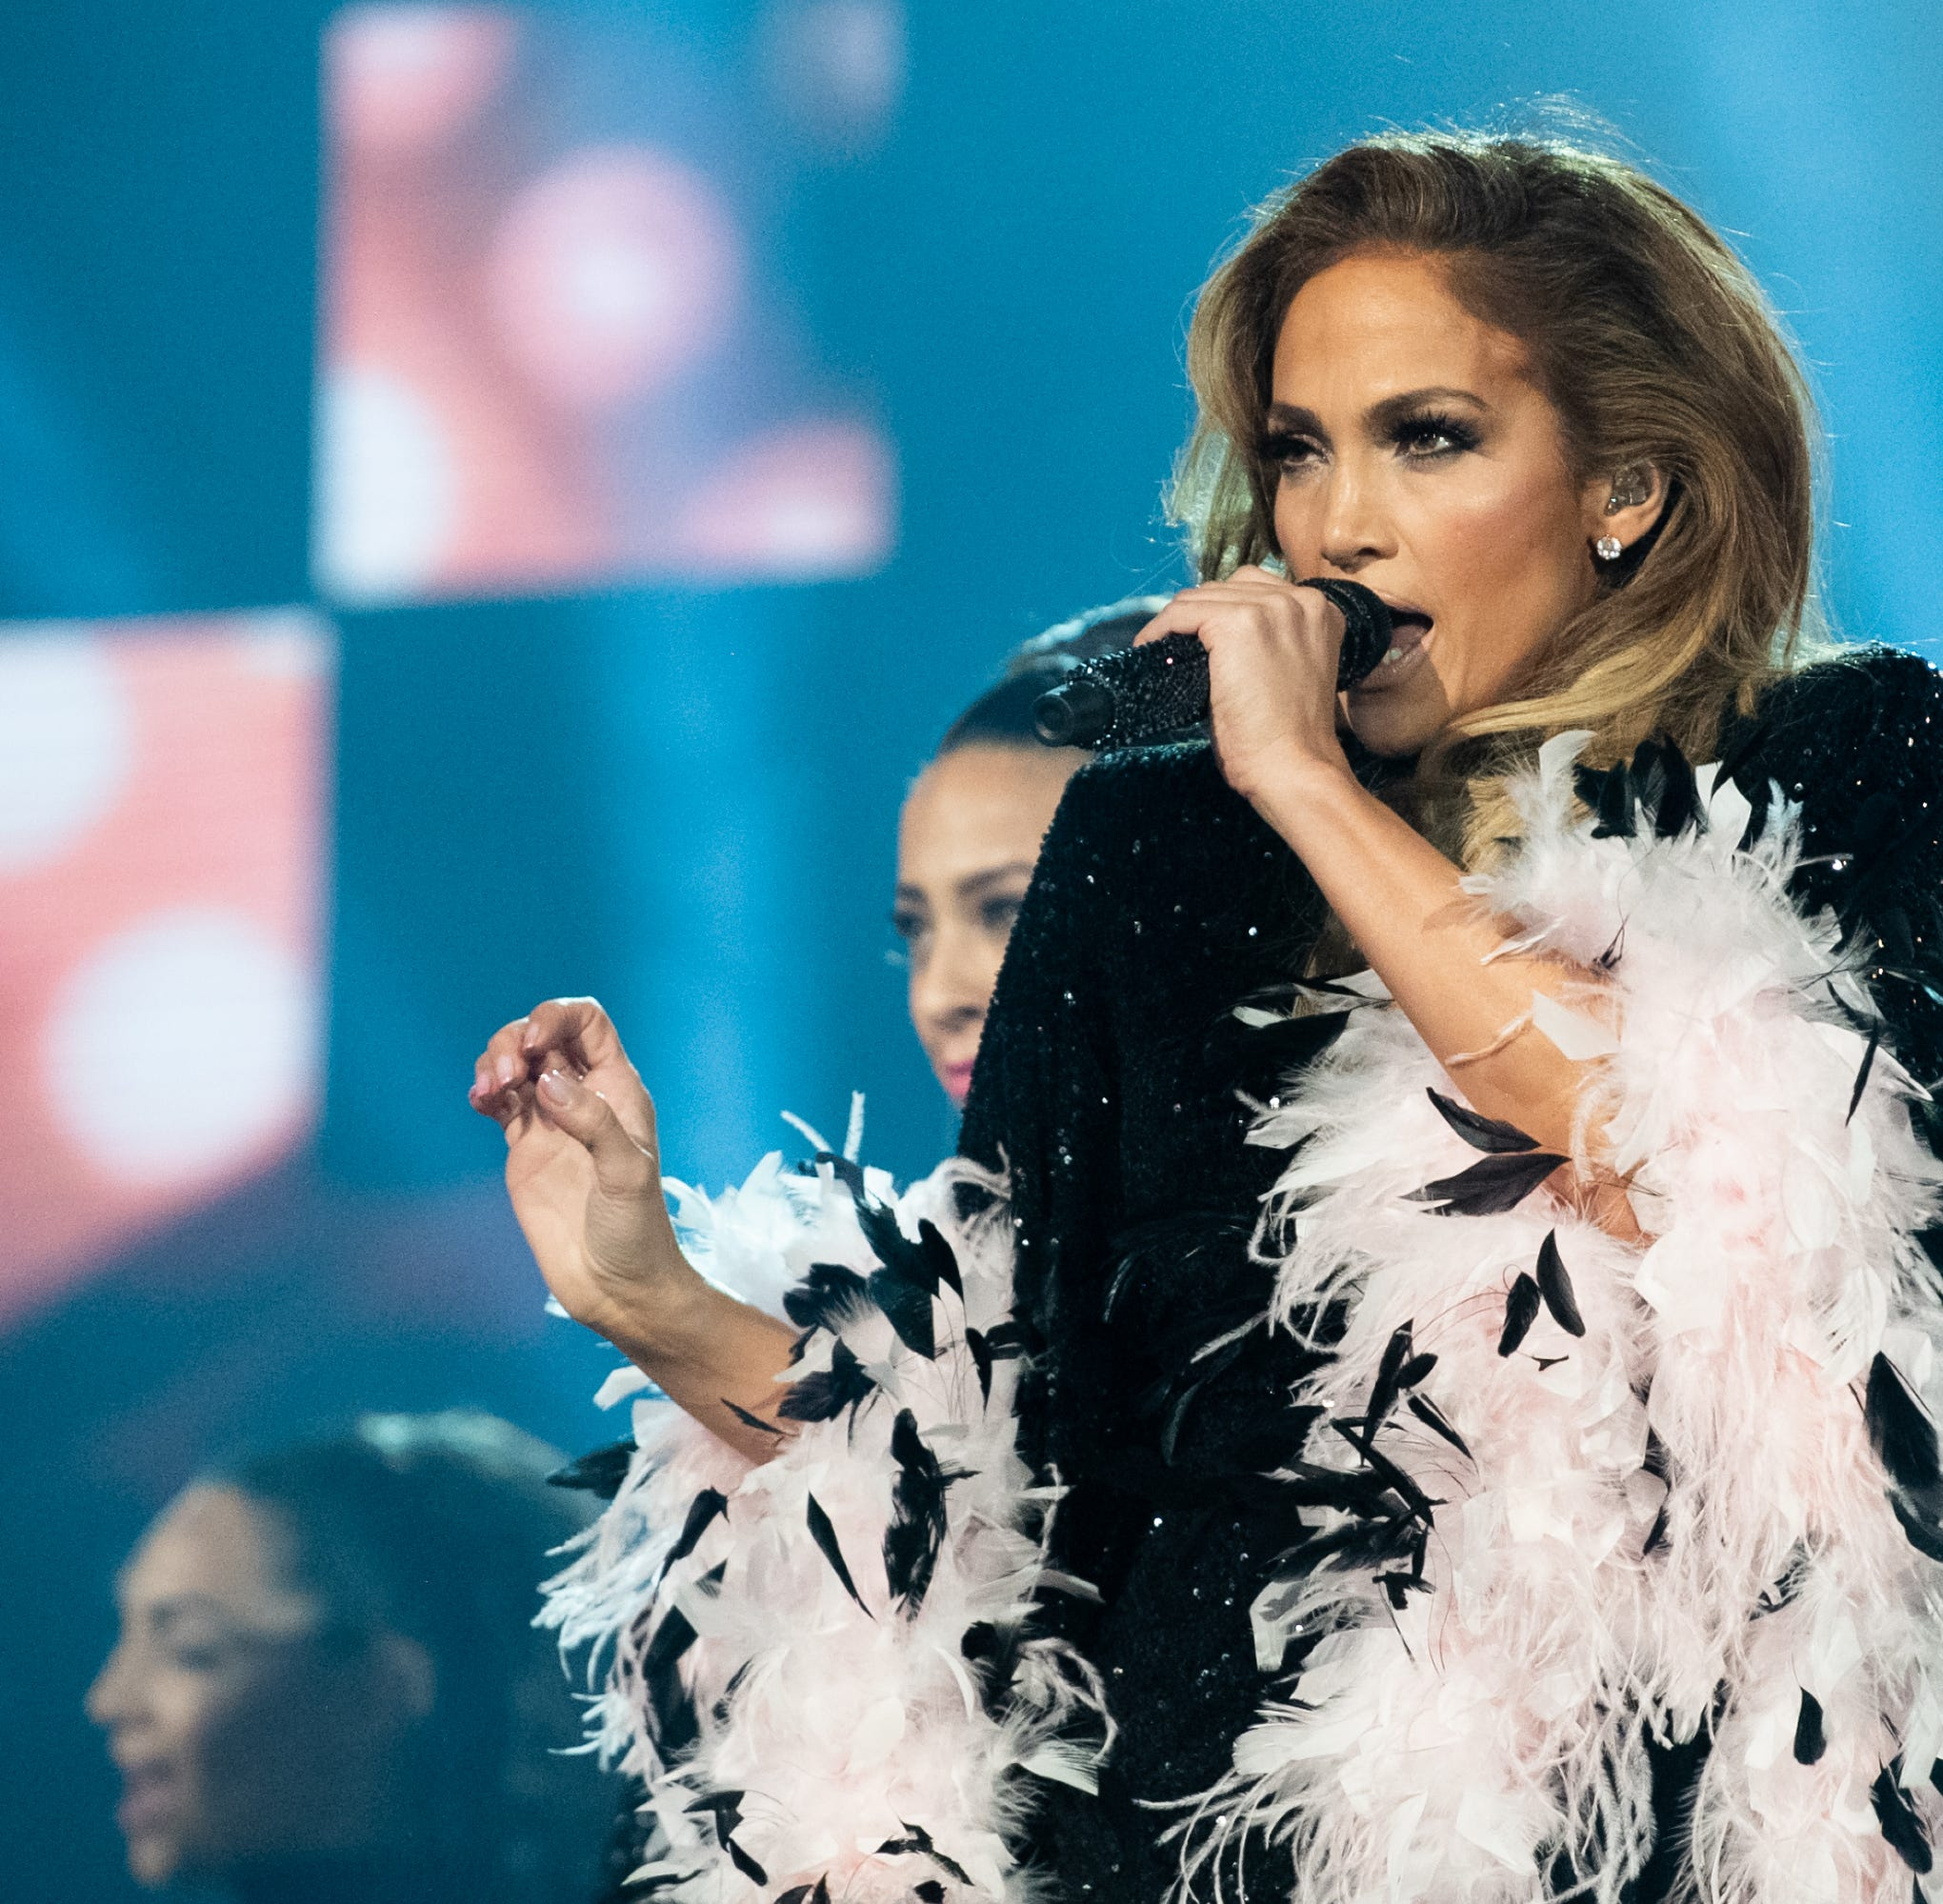 It's official: Jennifer Lopez headlining Summerfest July 3, her first Milwaukee show ever